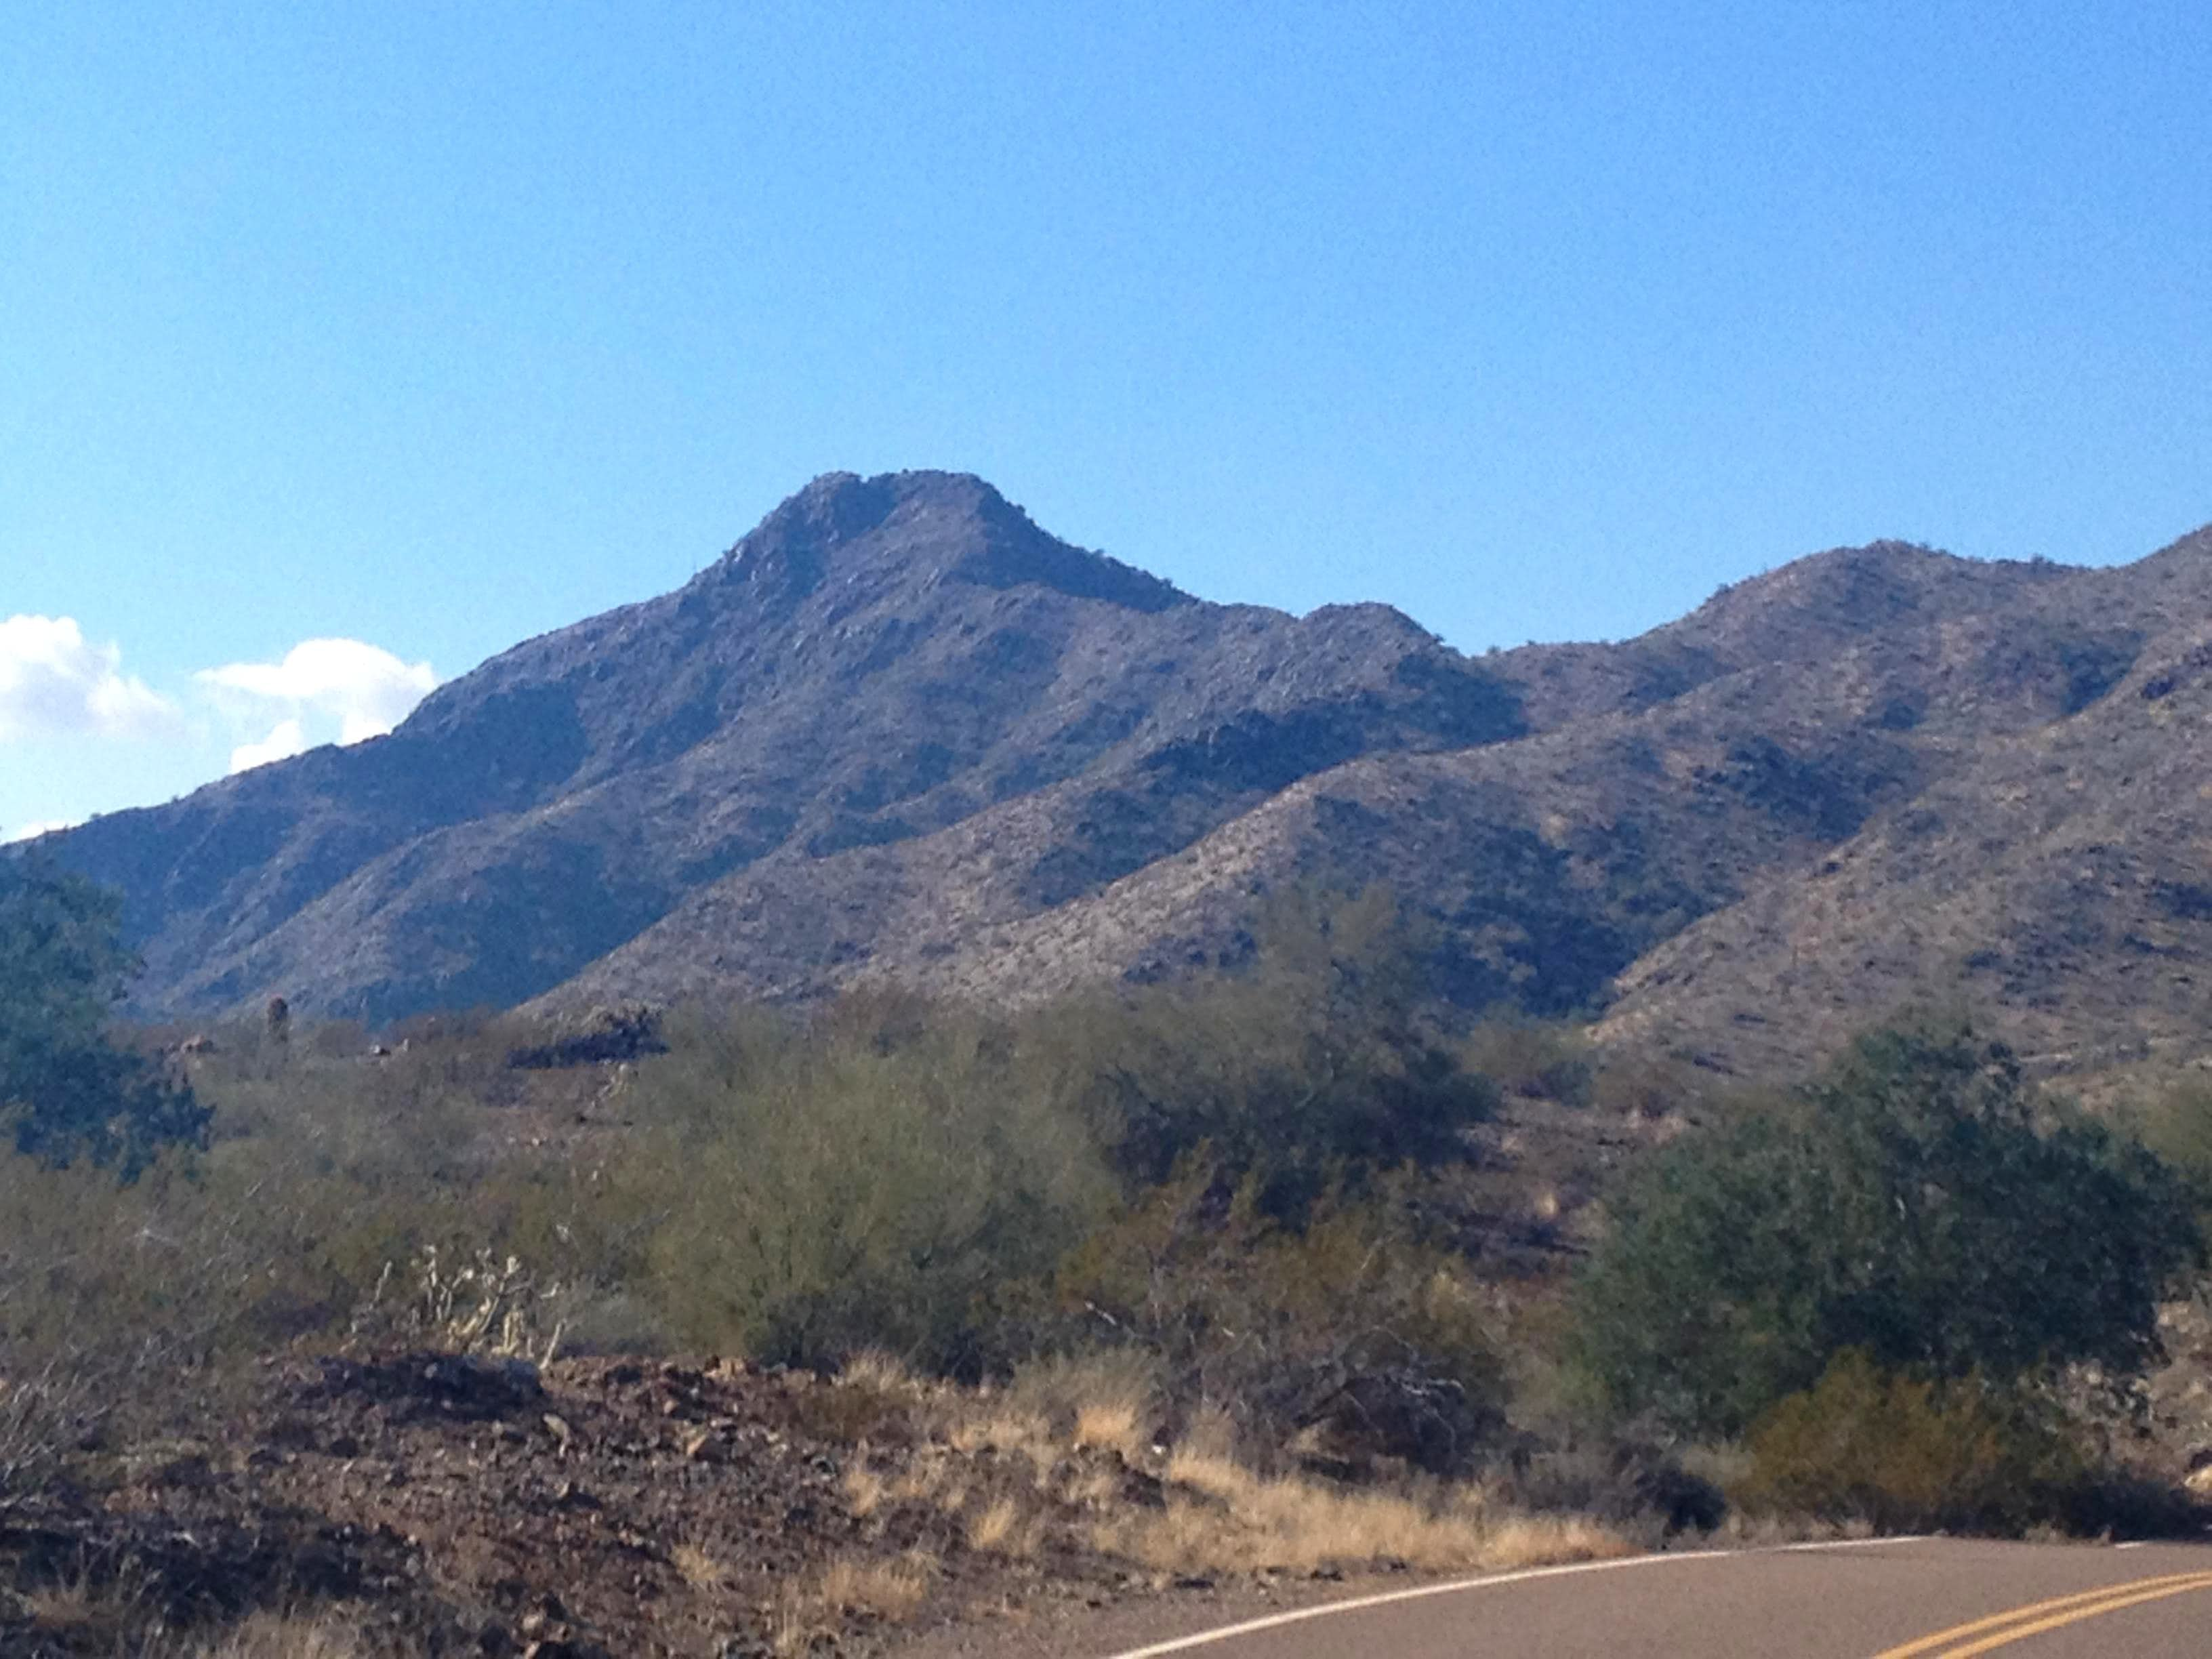 Maricopa Peak (South Mountain AZ)